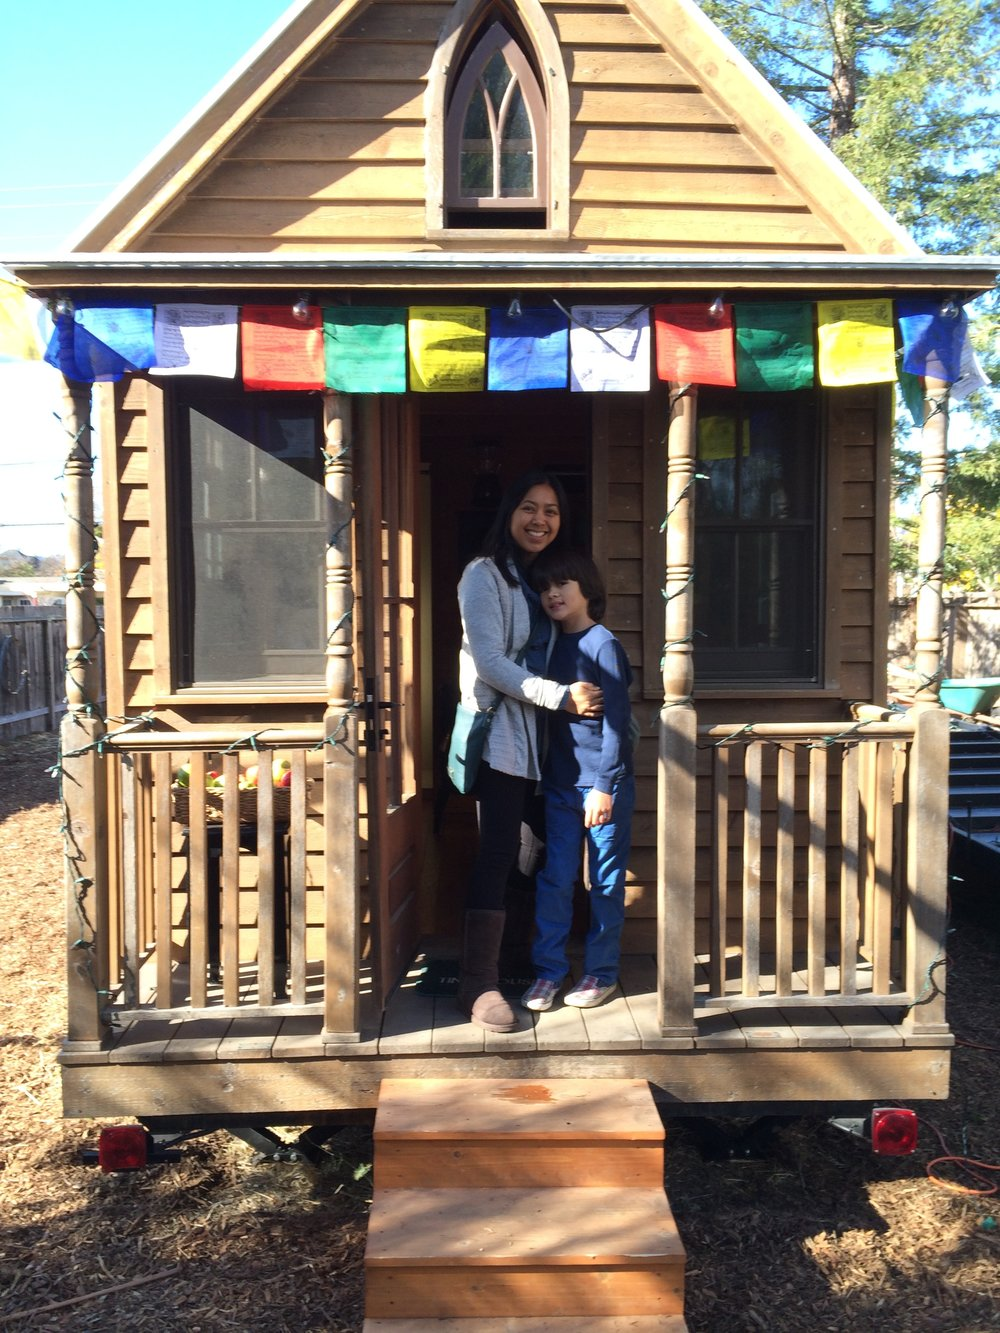 Visiting the first tiny house built in the United States, which is sitting in a backyard in Sonoma, California.